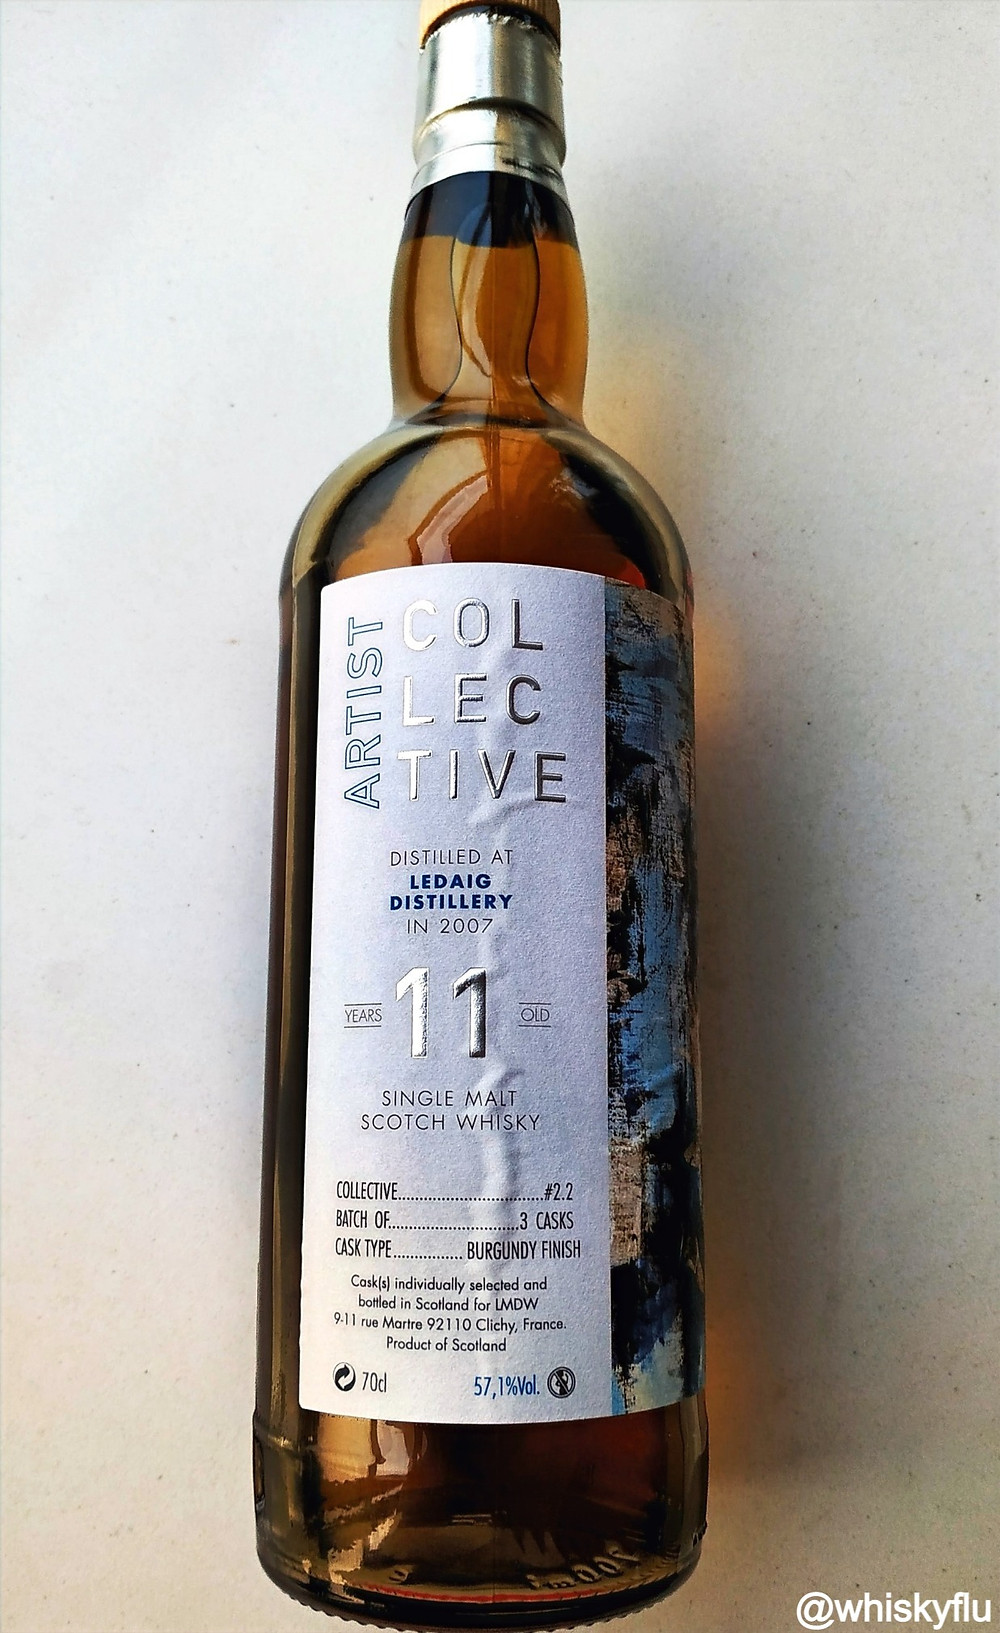 Ledaig Artist Collective Burgundy Finish 11 years